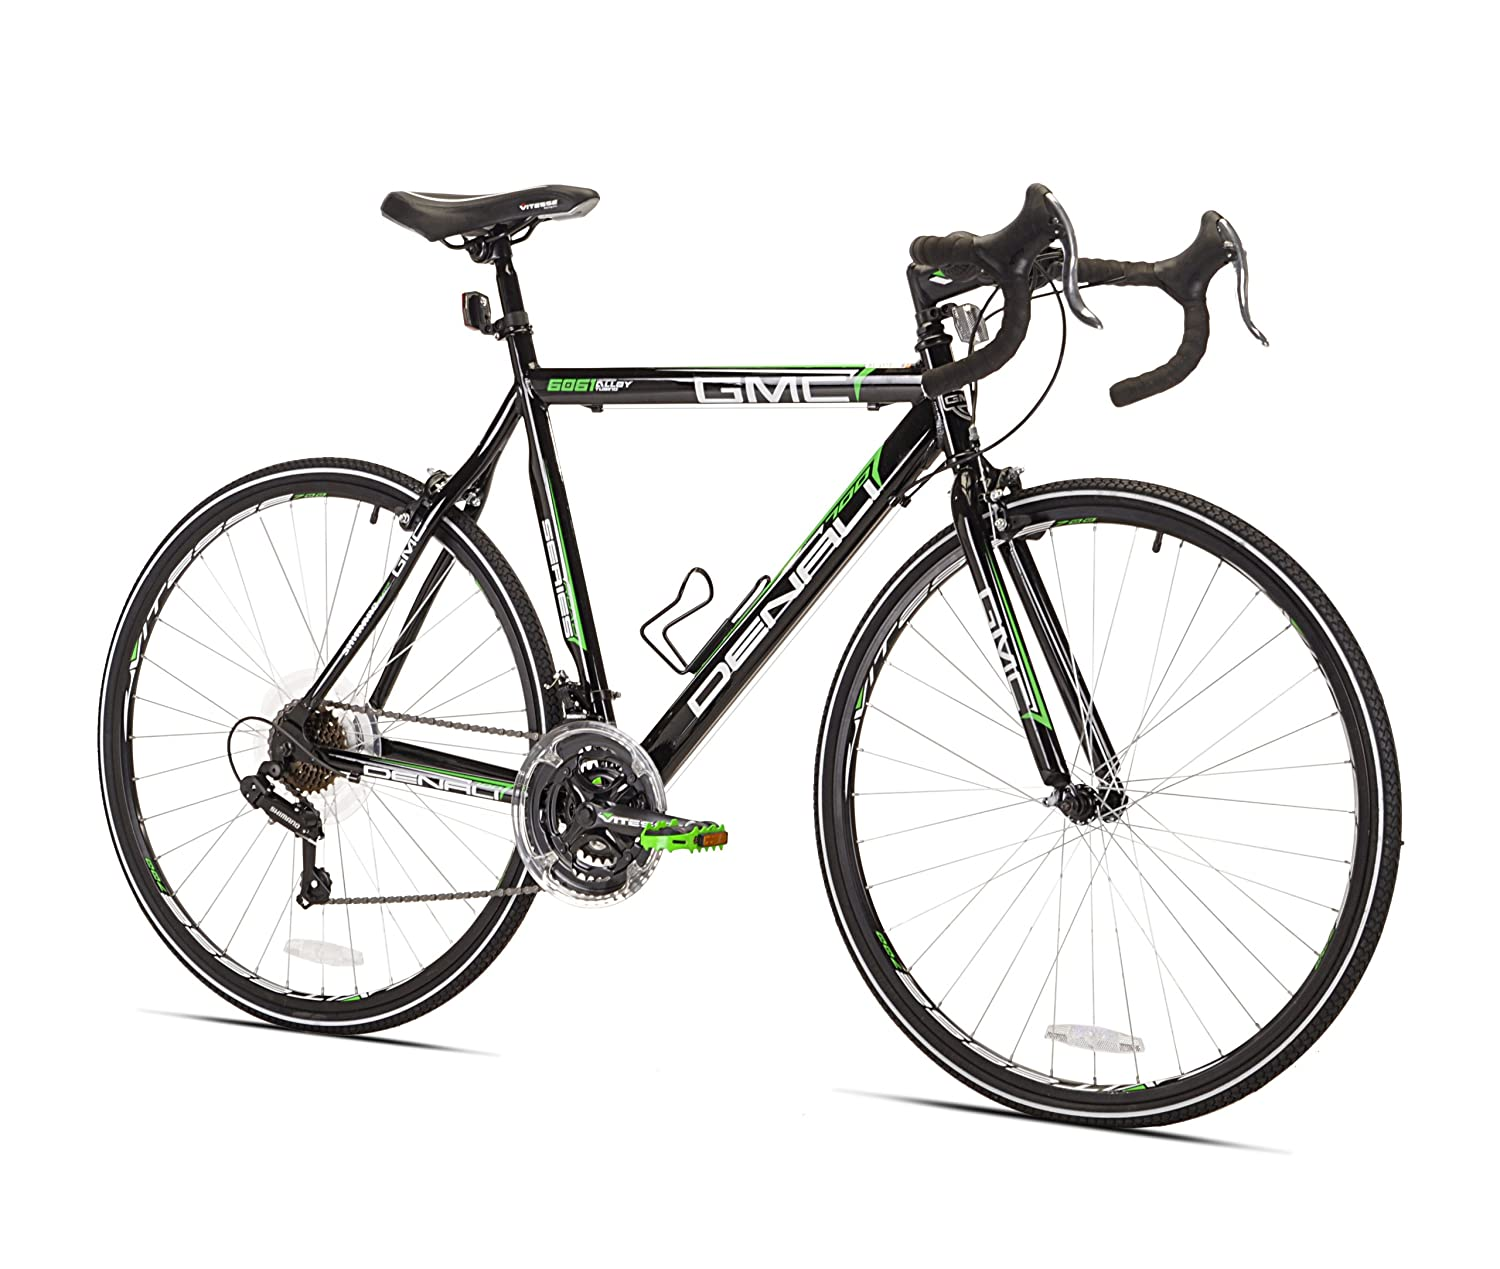 Discount Road Bikes GMC Denali Road Bike